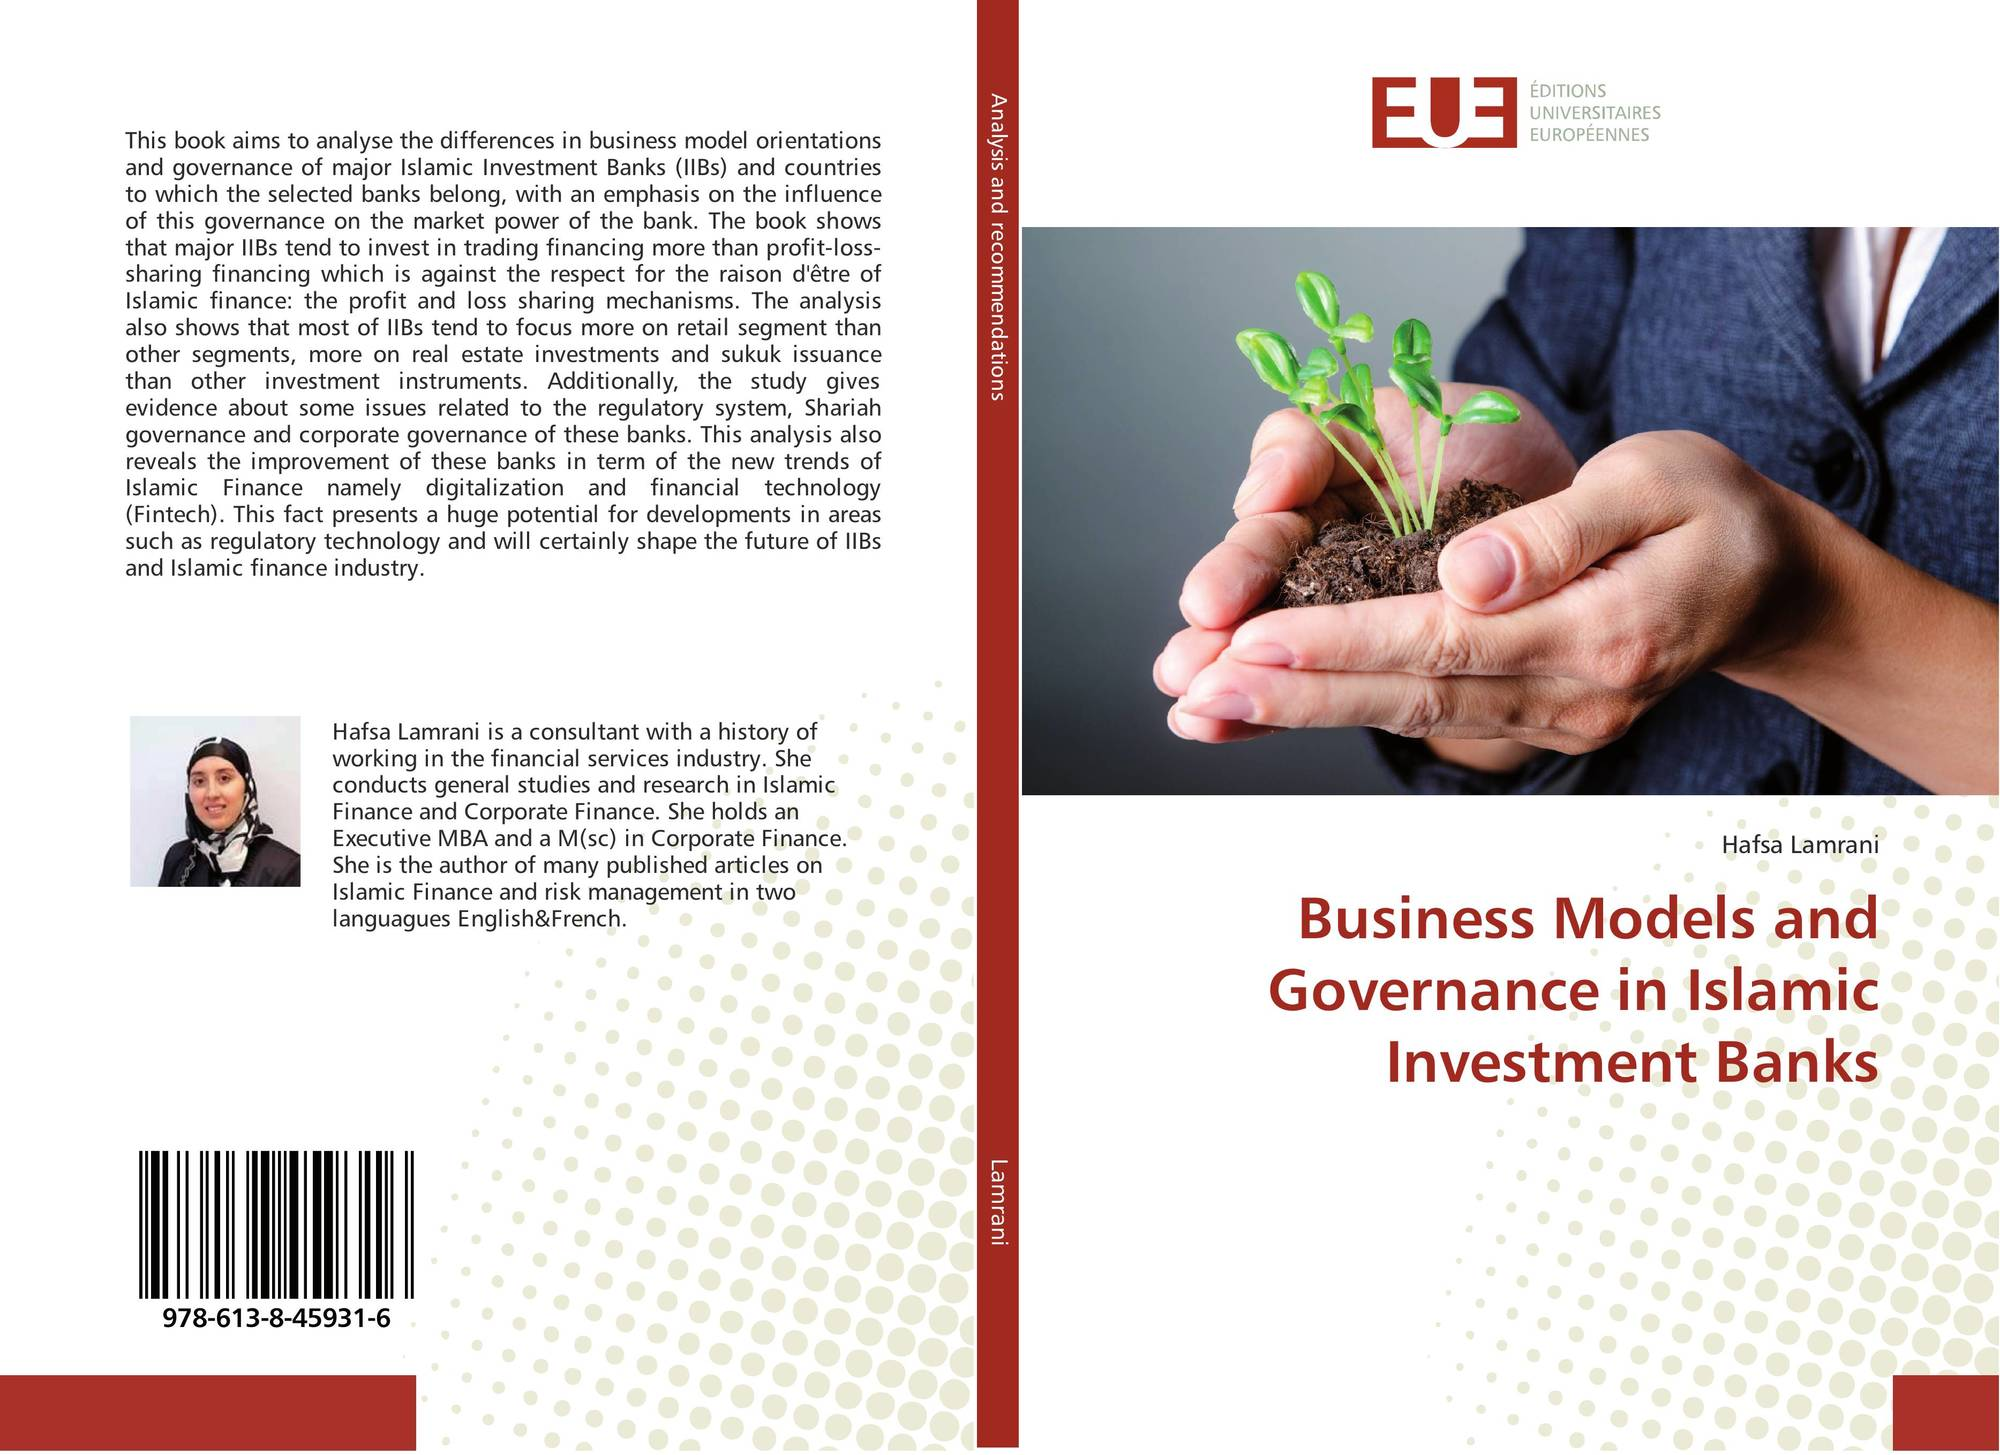 Business Models and Governance in Islamic Investment Banks, 978-613